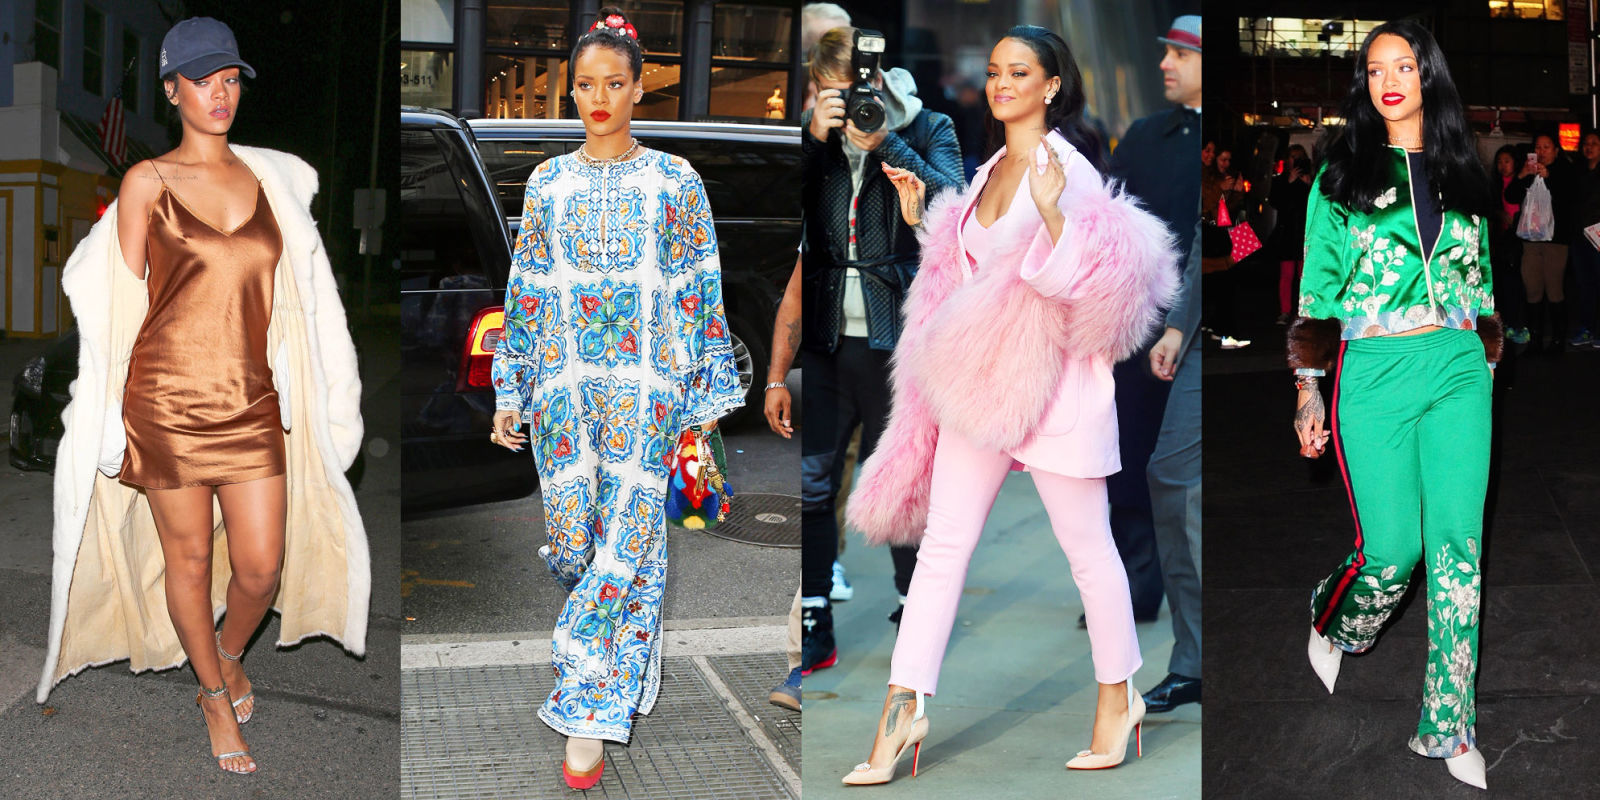 Rihanna in sheer raincoat like mini dress in santa monica rihanna fashion and style photos Style me pink fashion show